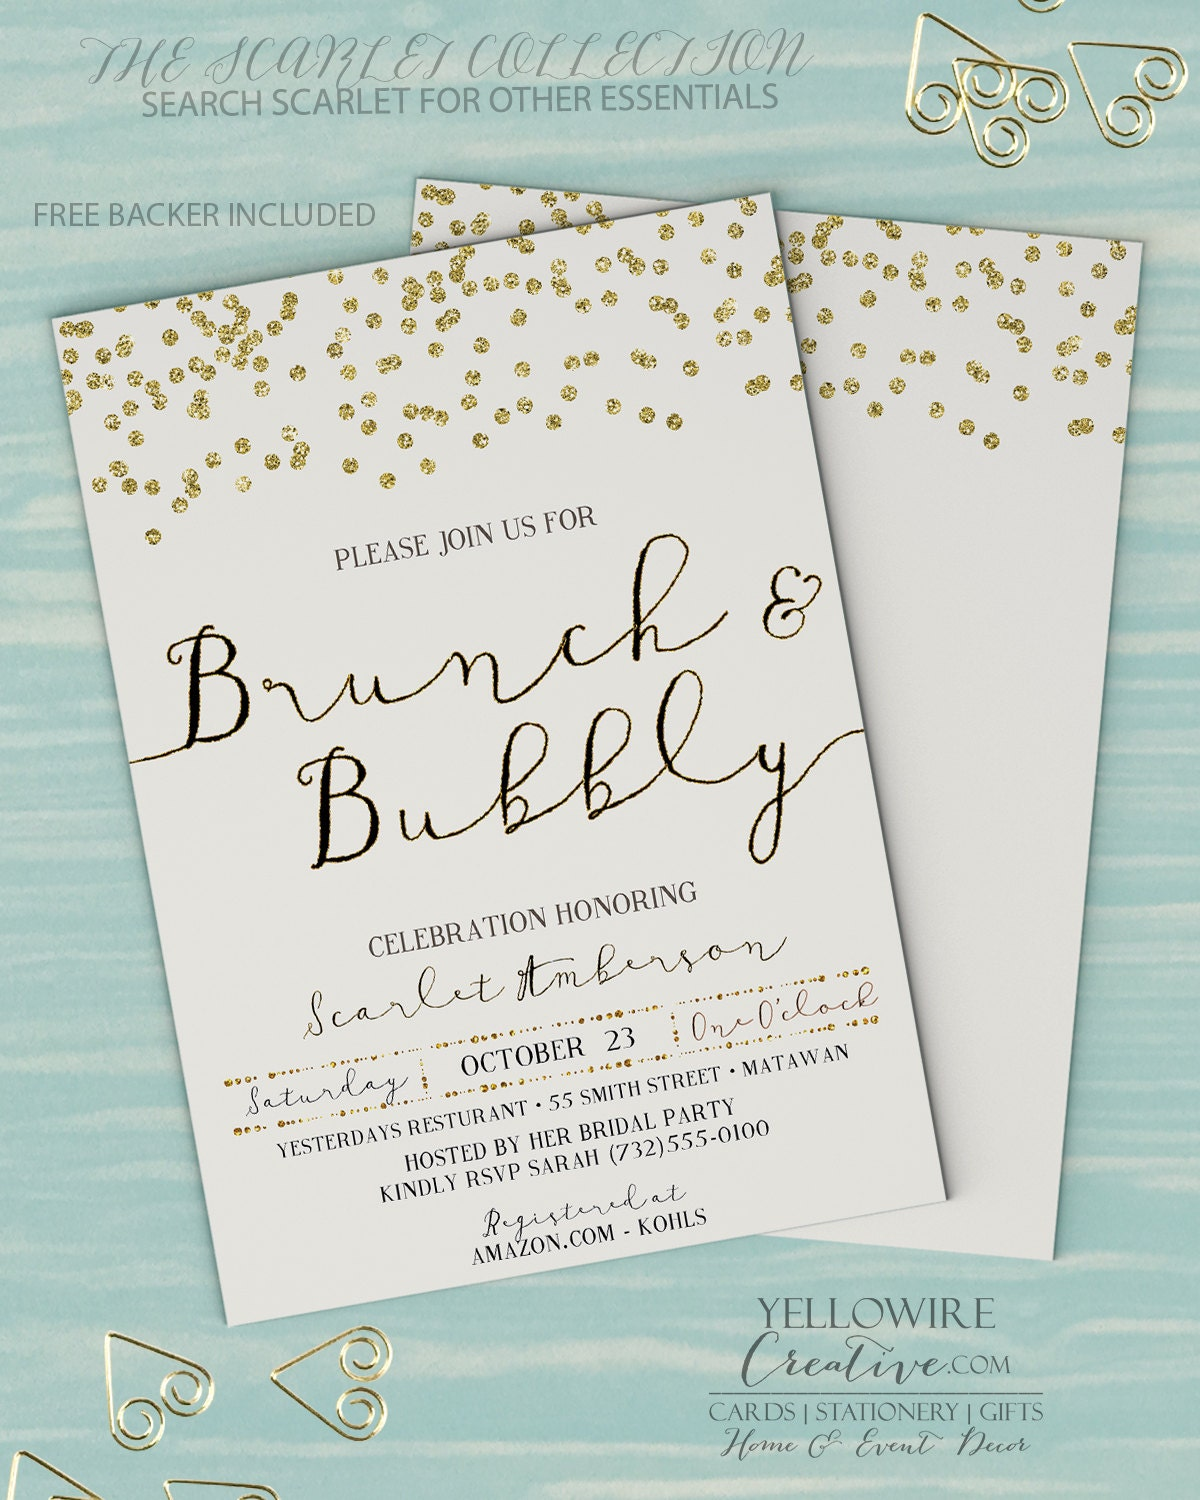 Brunch and bubbly invitation bridal brunch invitation for Wedding brunch invitations